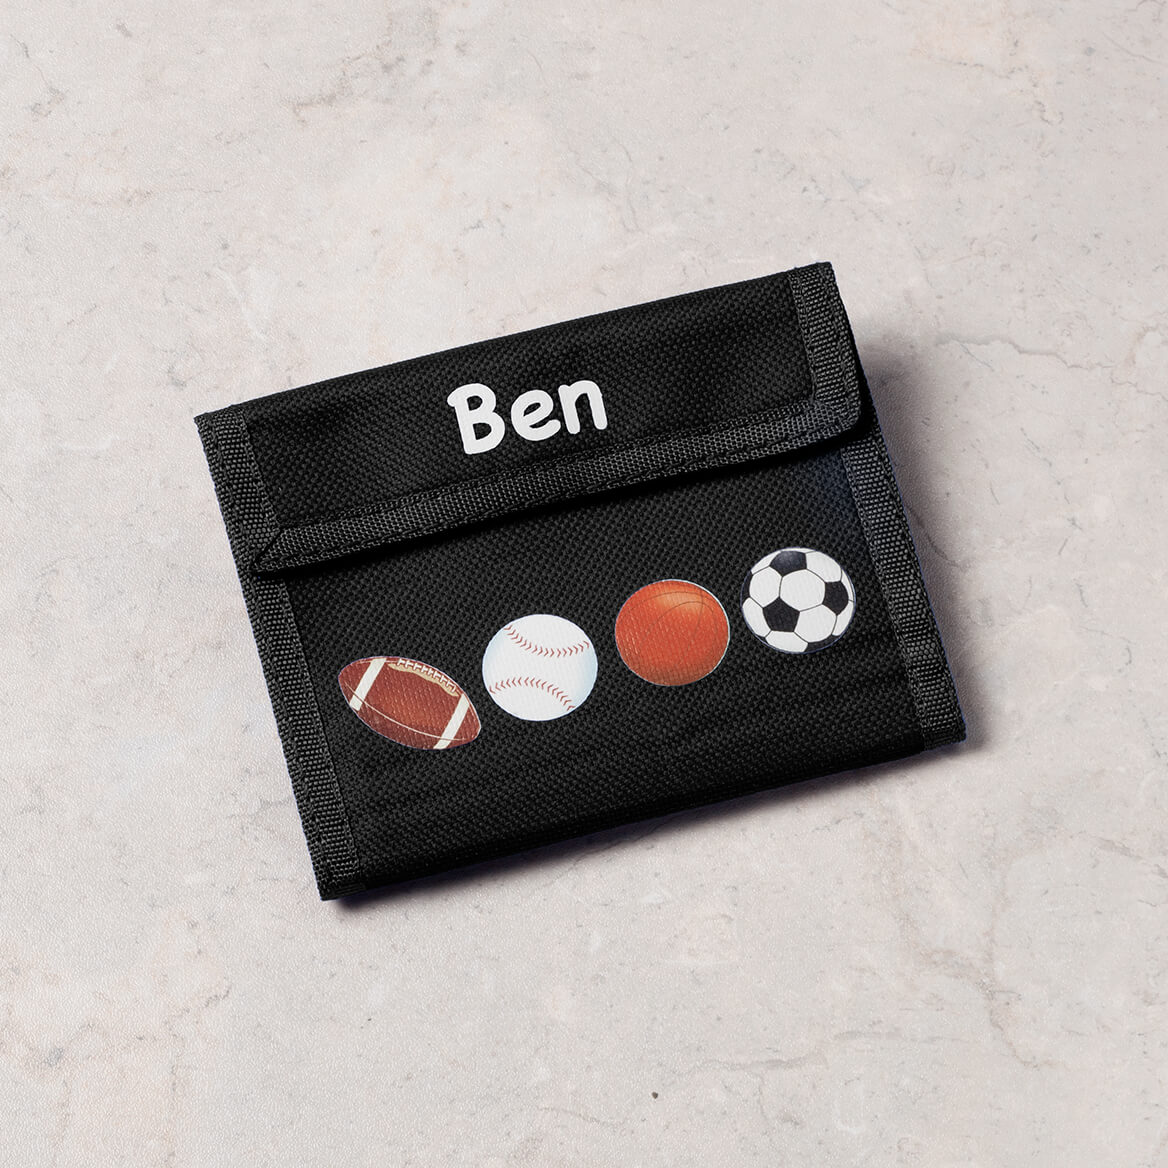 Personalized Childrens Wallets-346926